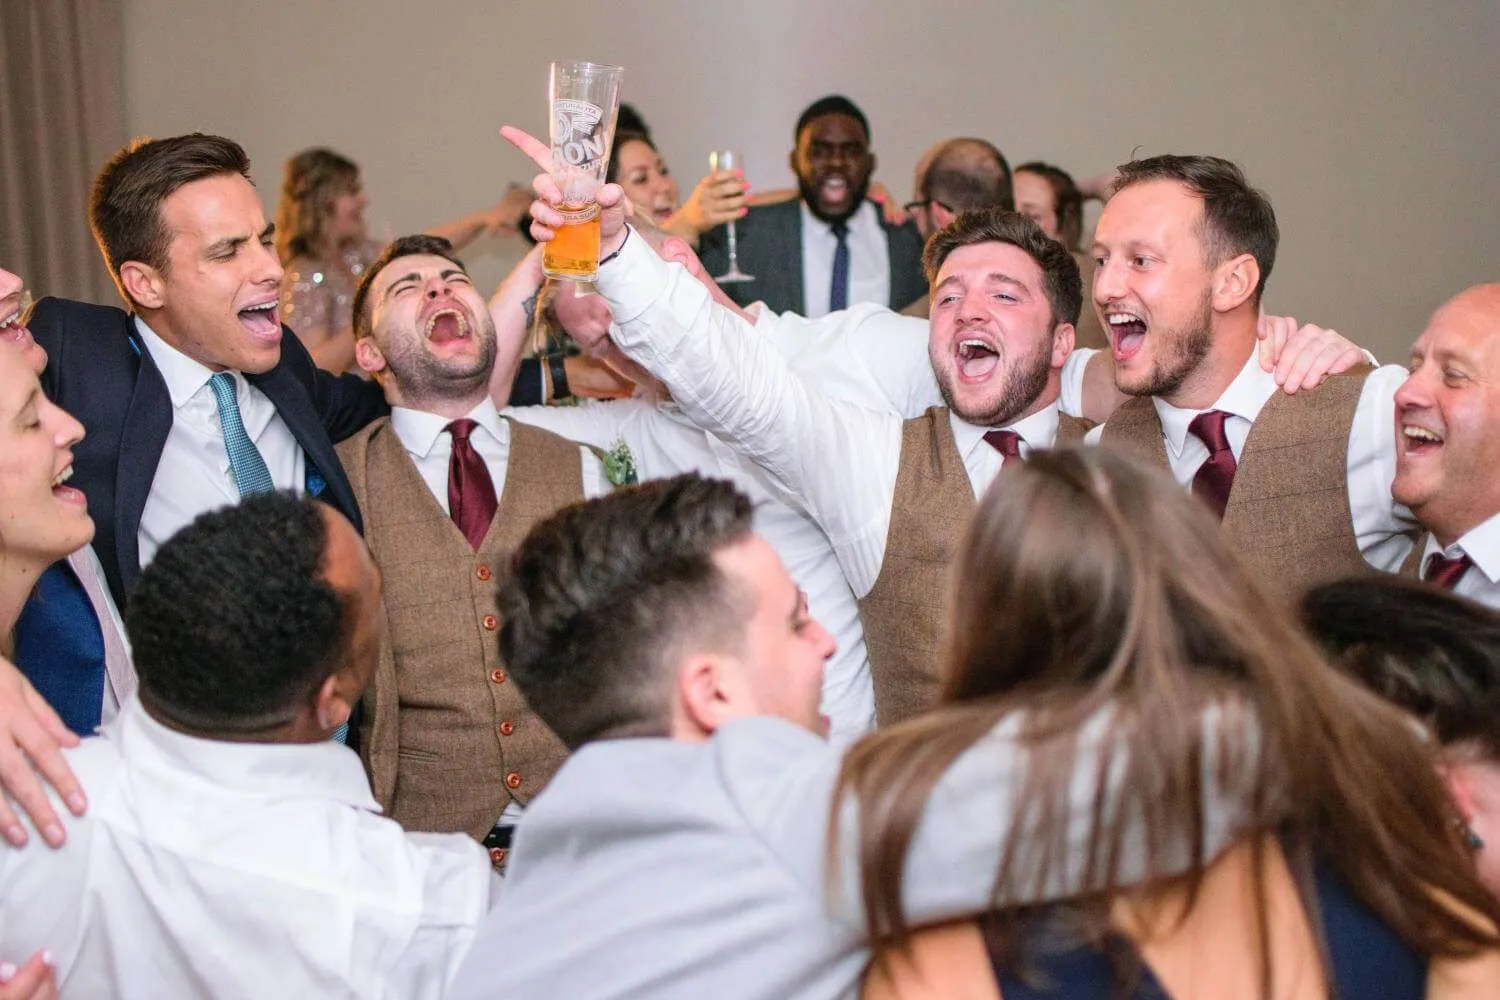 guests singing together at a wedding